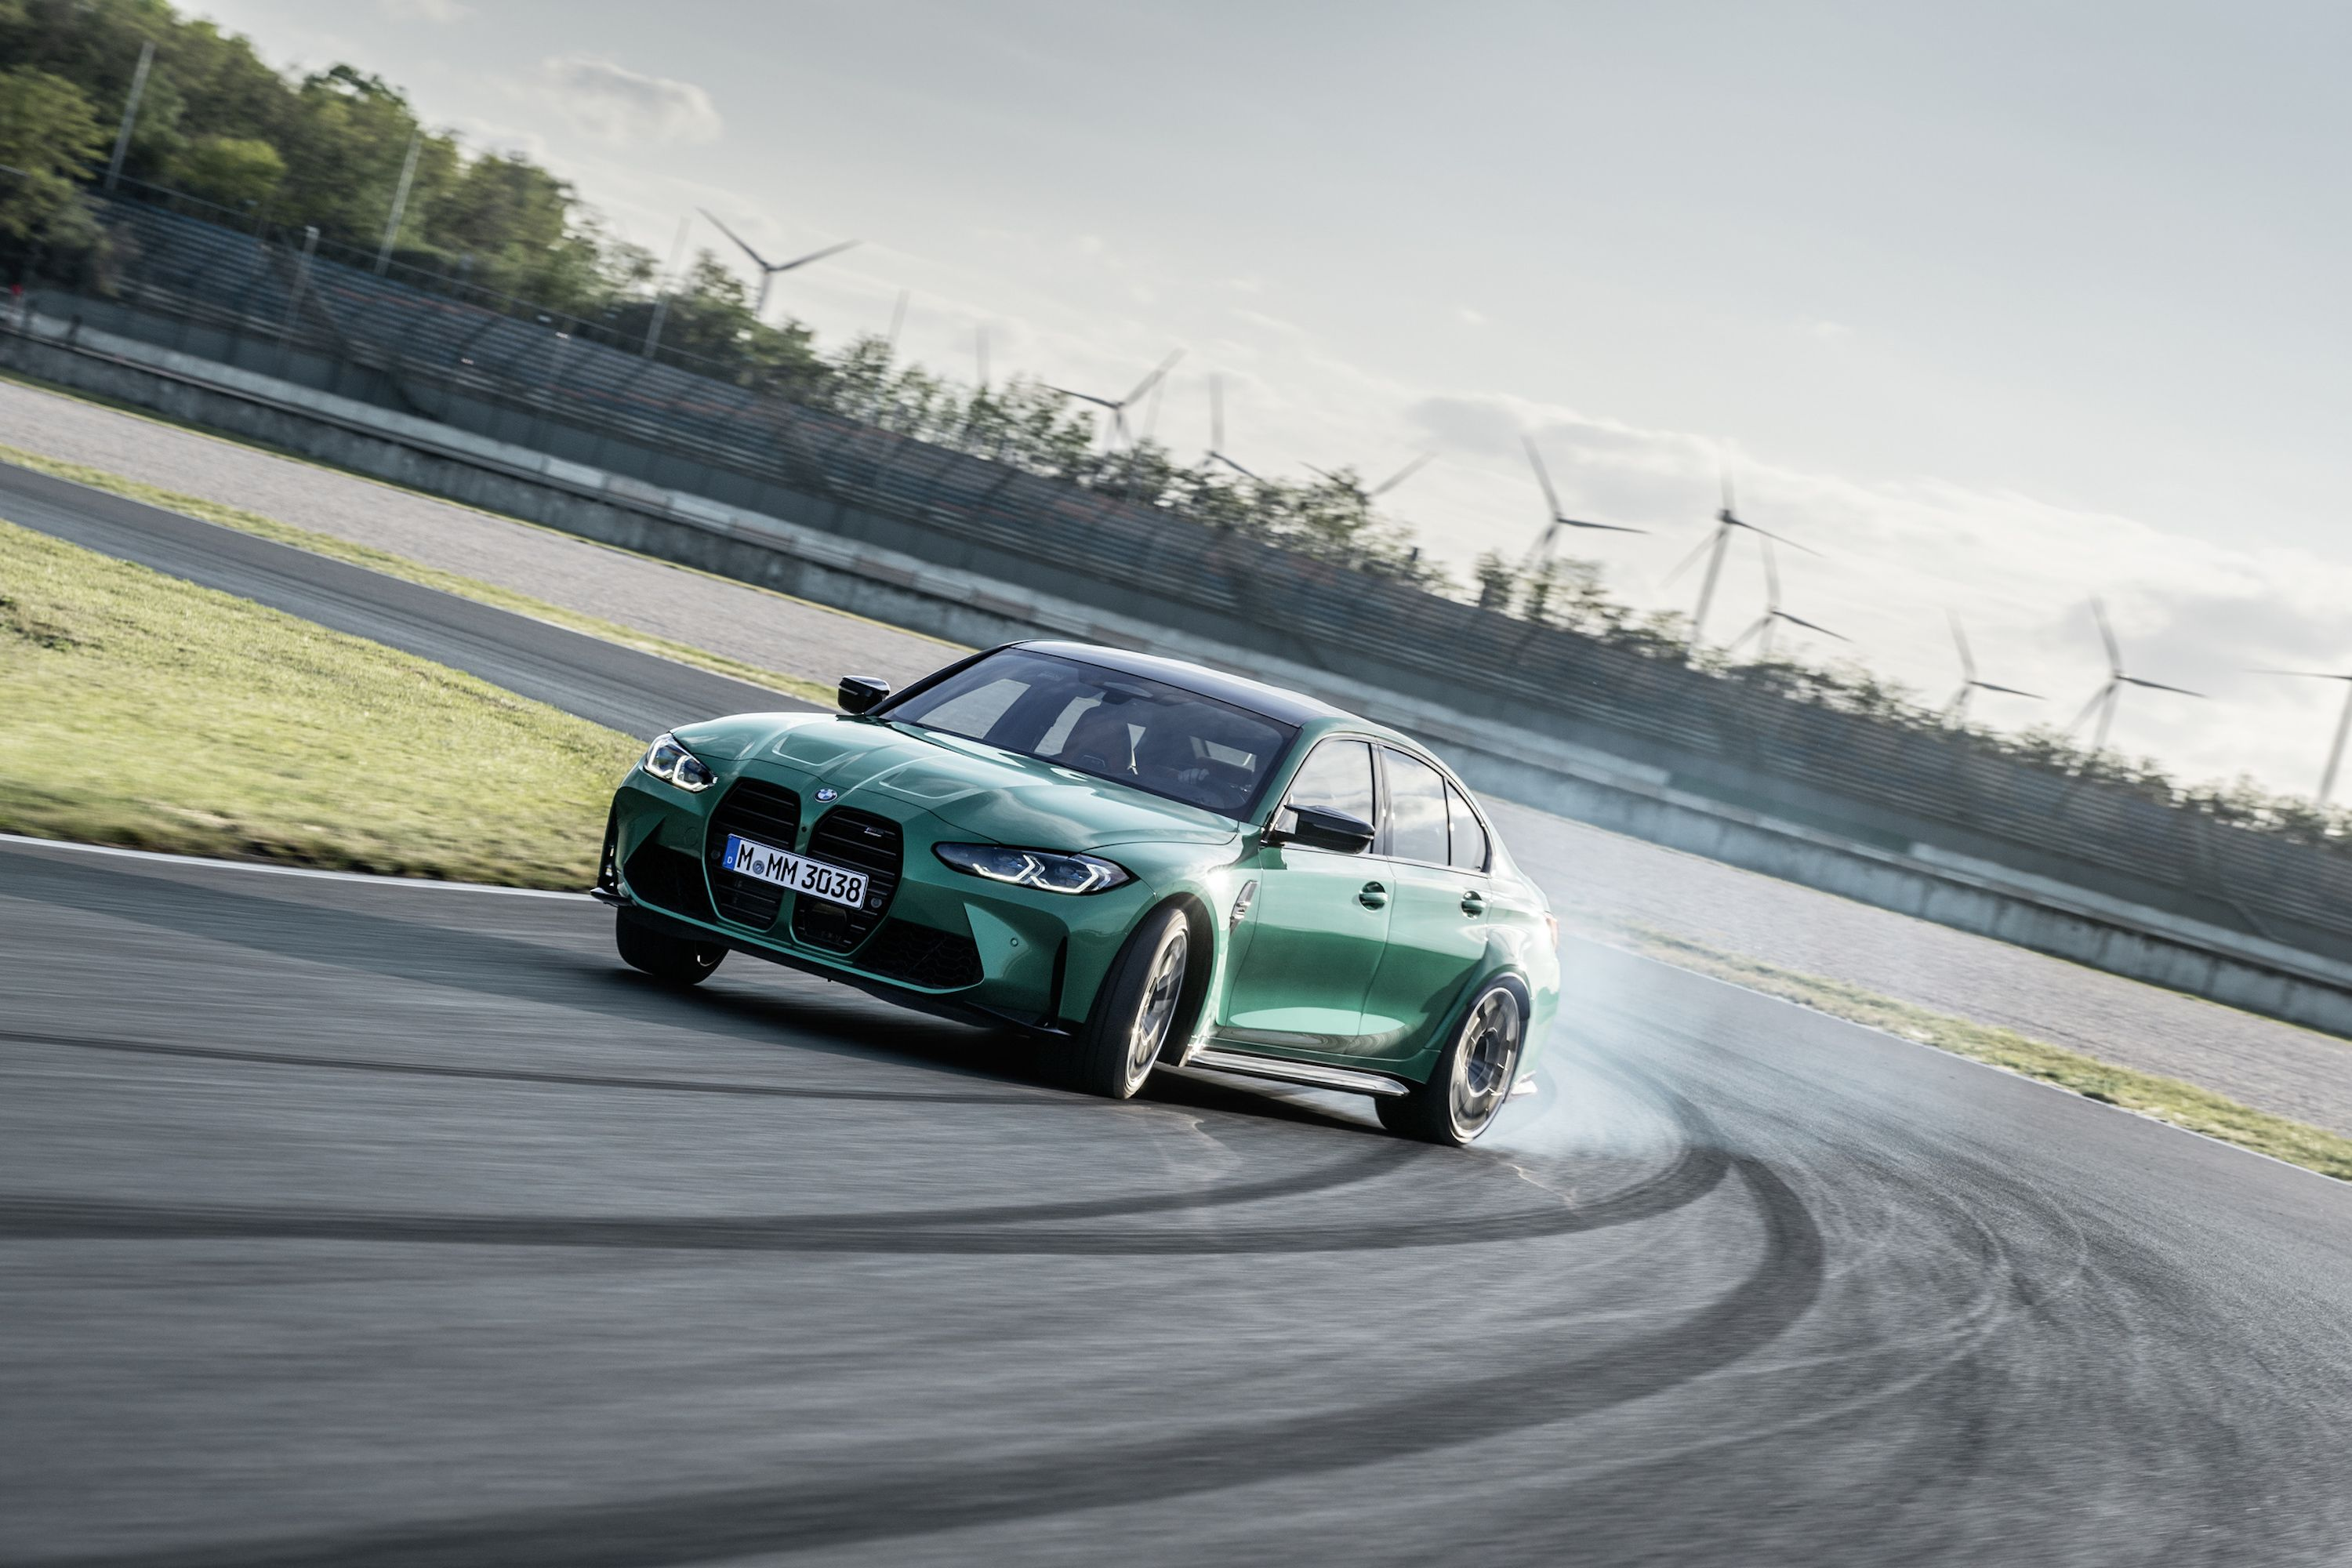 Bmw M3 Buyer S Guide Every Generation From The E30 To G80